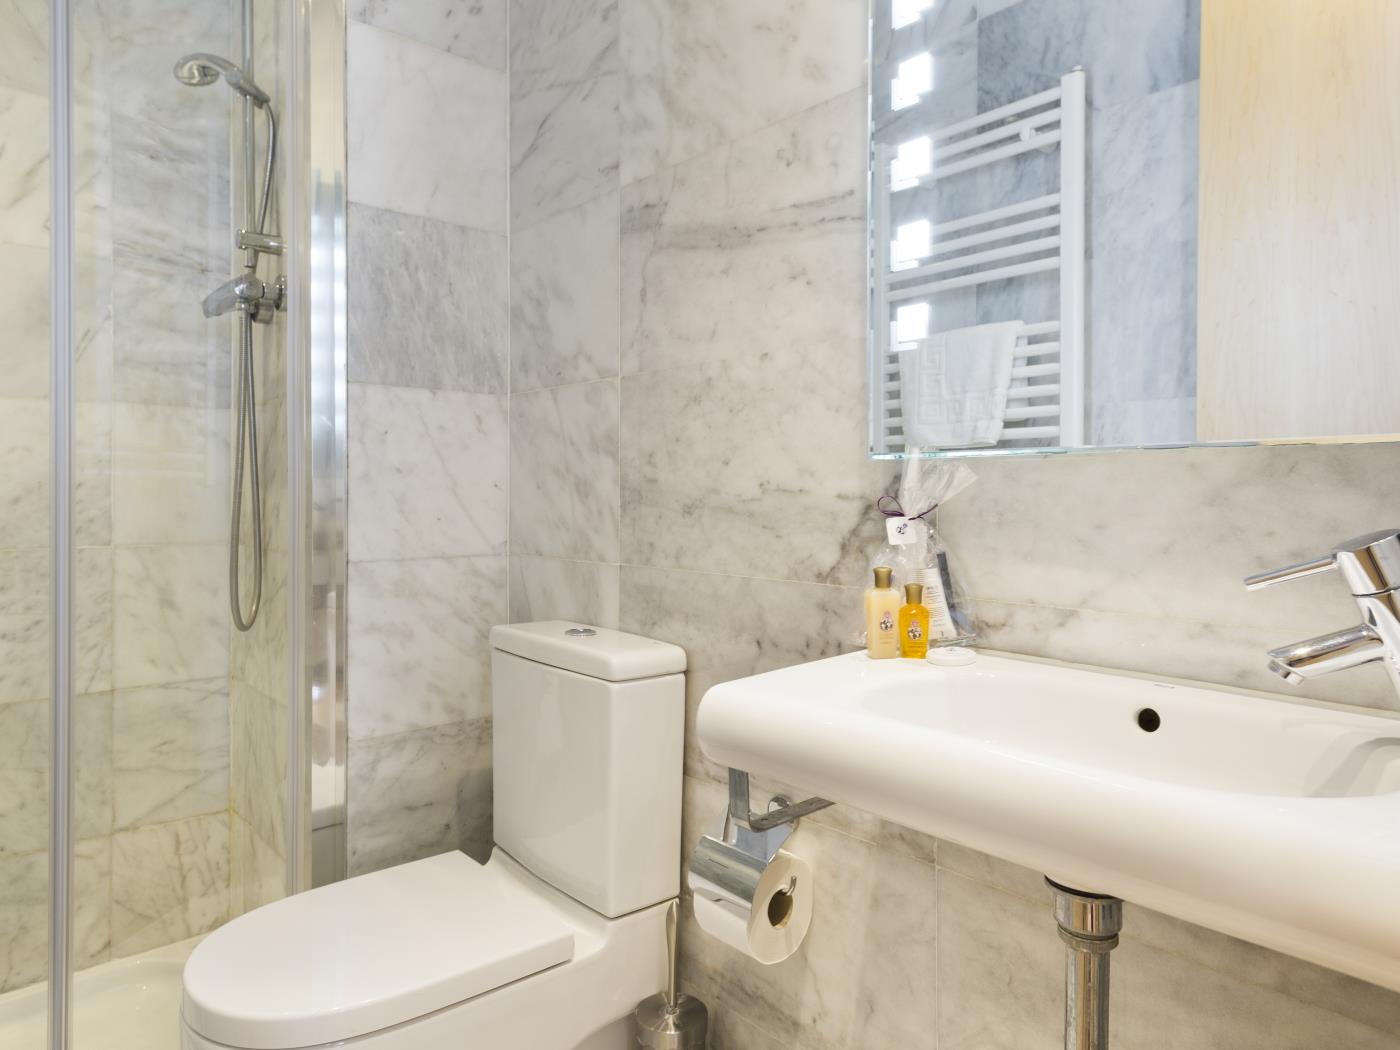 Pool Apartment Gothic Quarter Barcelona - My Space Barcelona Aпартаменты